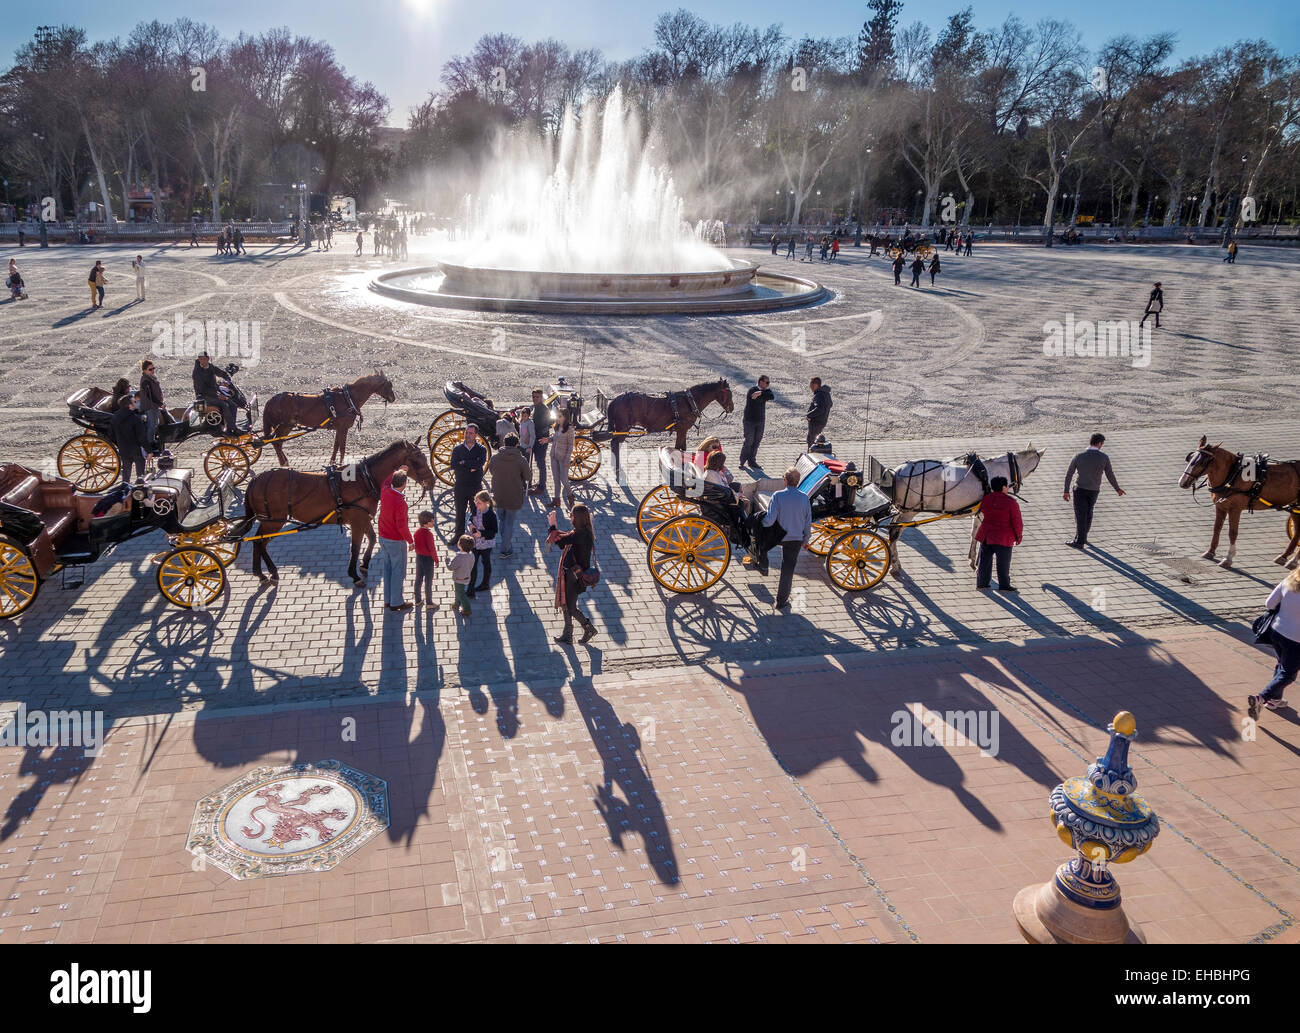 Plaza de Espana, Seville, Sevilla, fountain with horse carriages, tourists tourist carriage ride in Parque de Maria - Stock Image